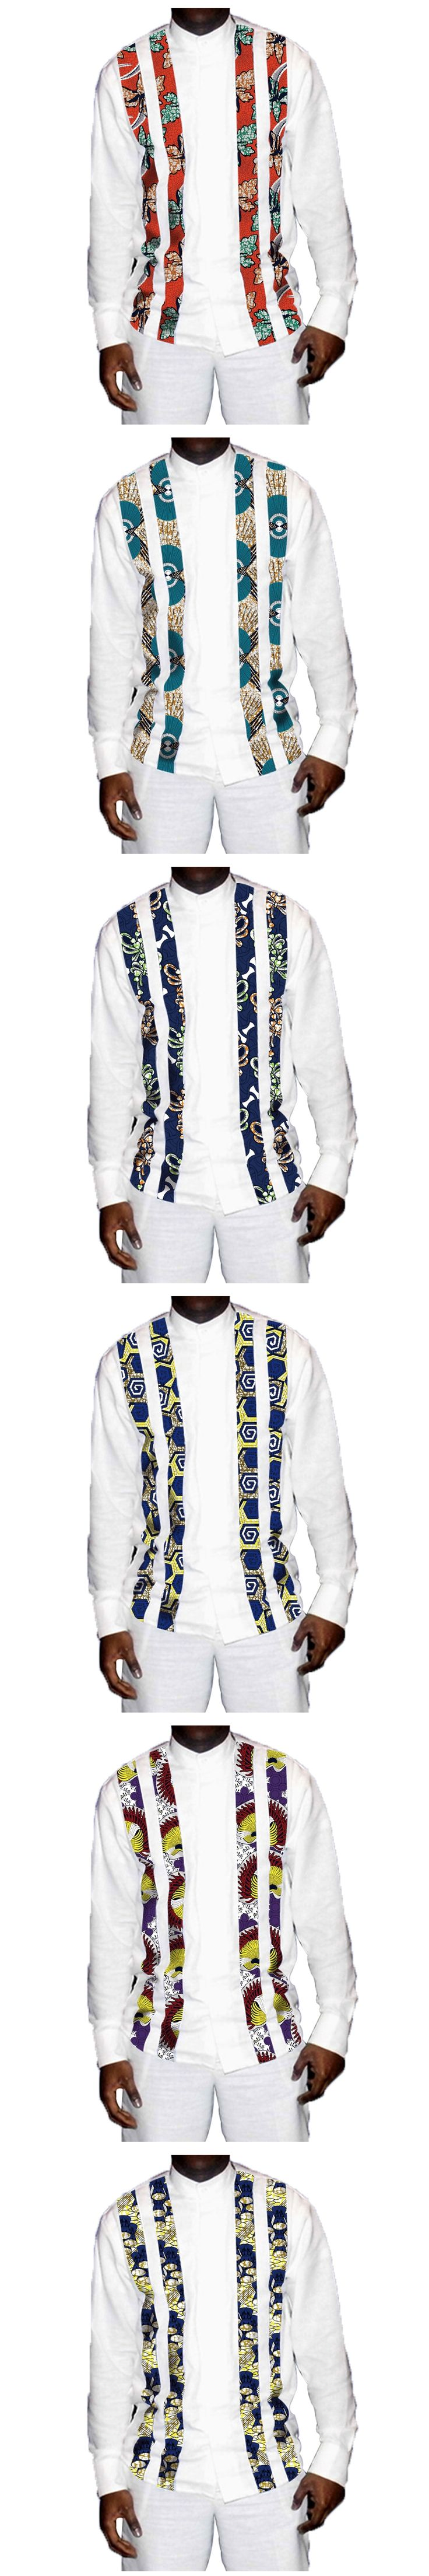 Handsome Men's African Shirts Africa Festive Pattern Long Sleeve Shirts Men Fashion African Clothes For Men